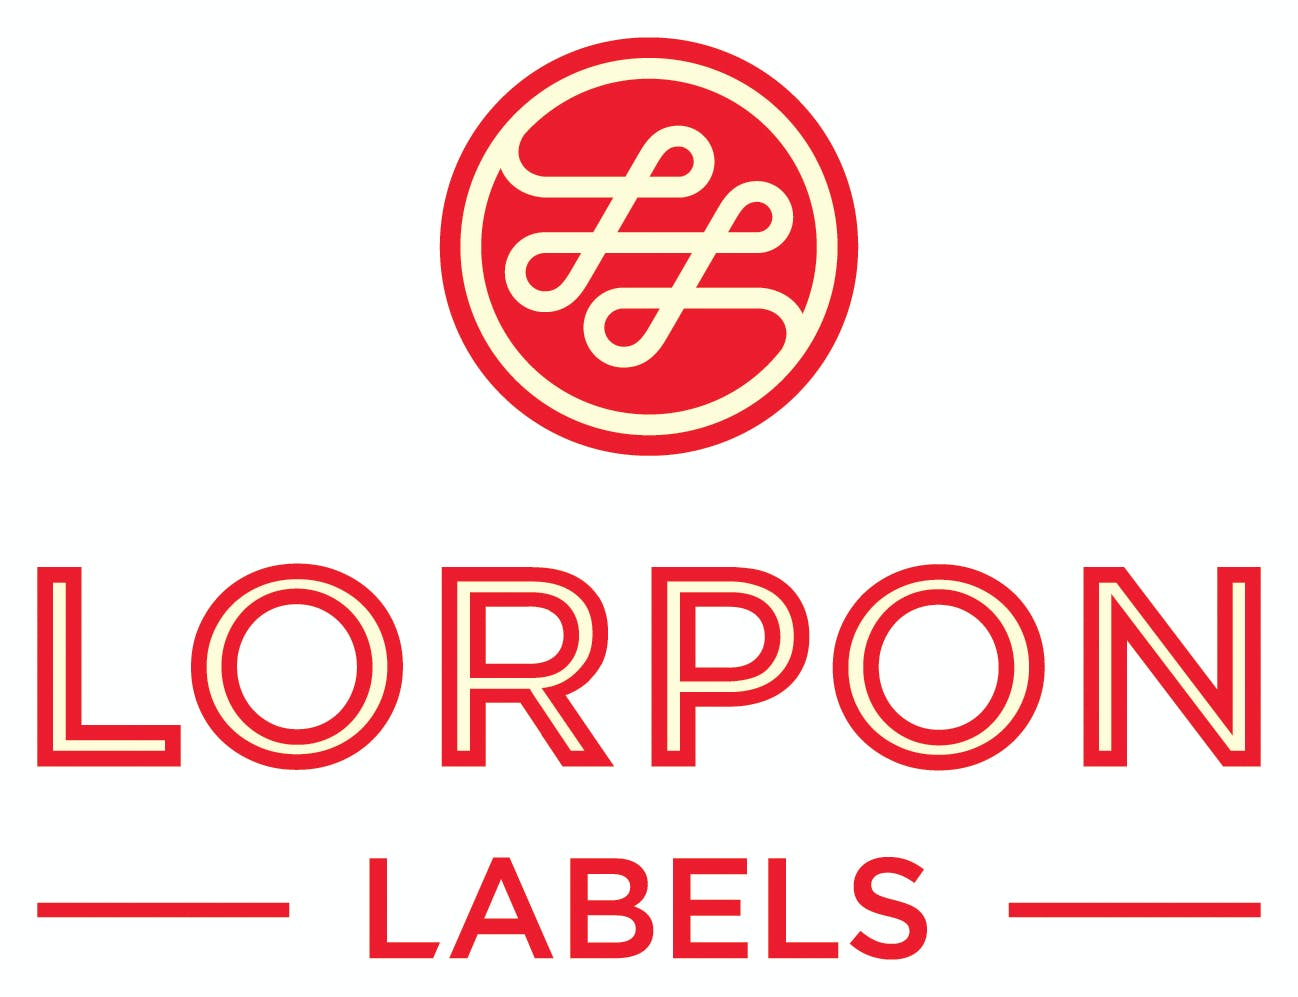 Lorpon Labels logo